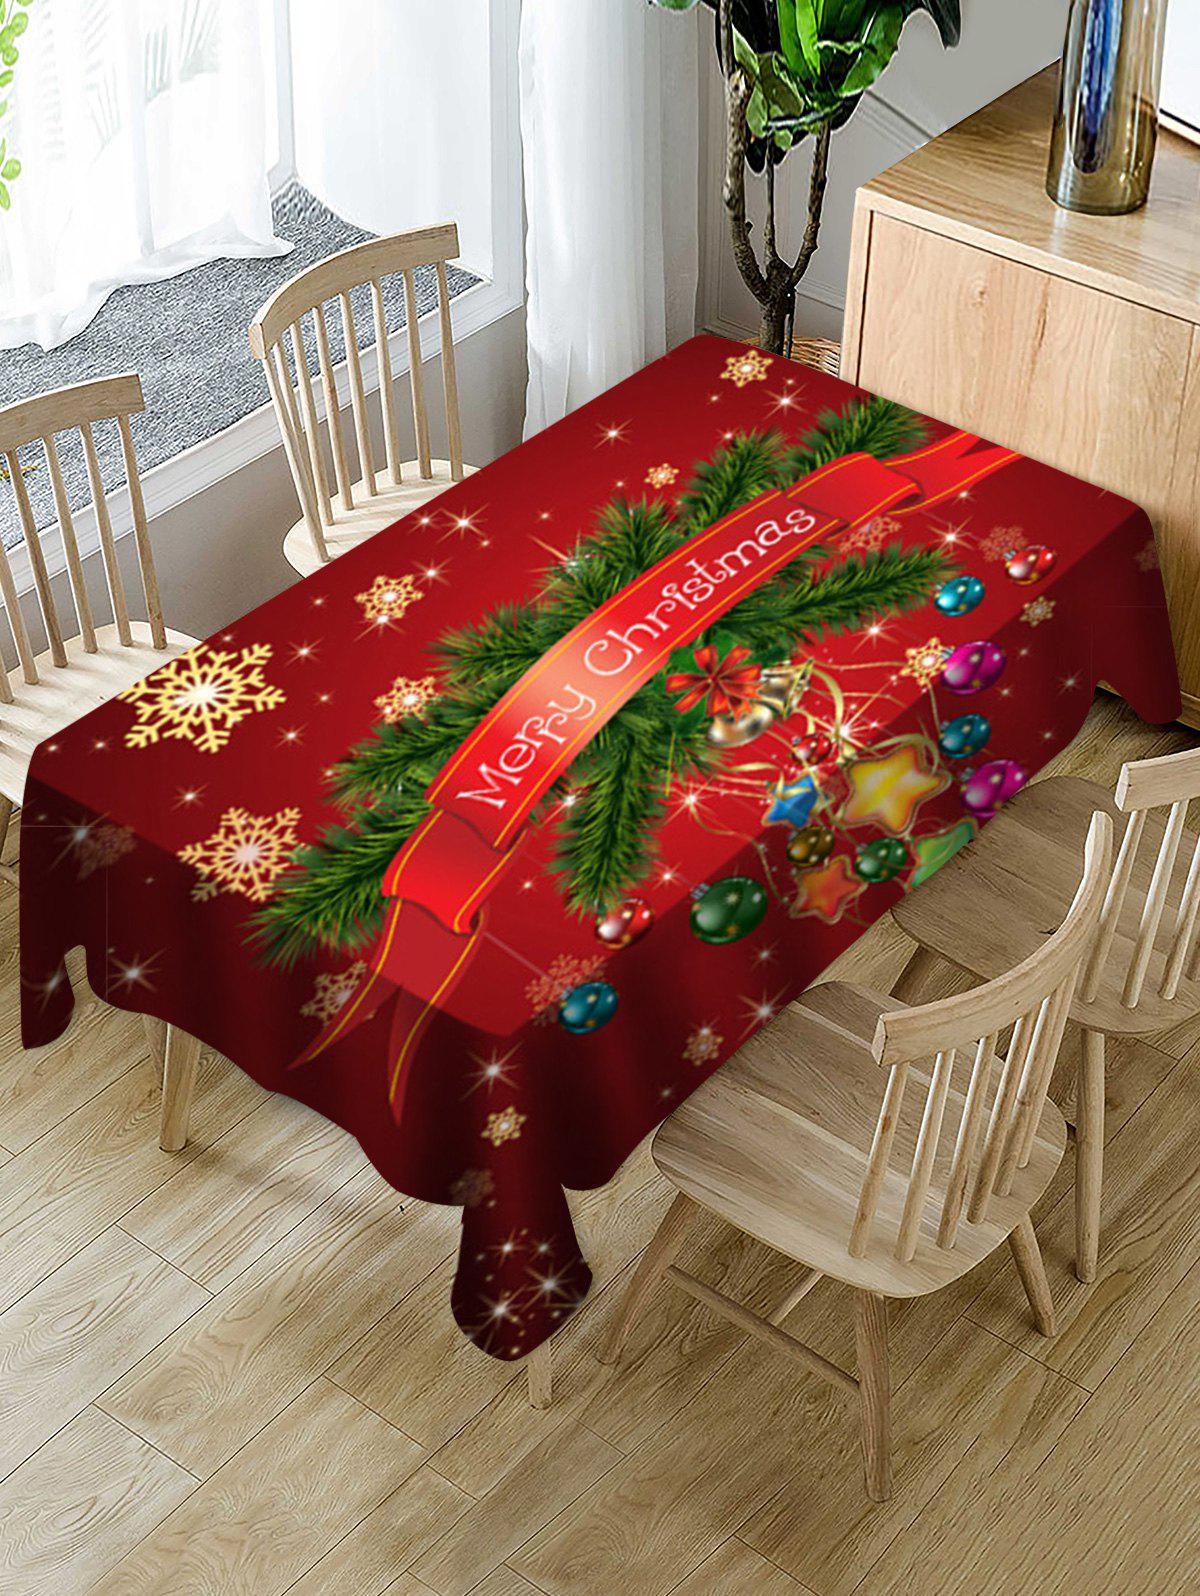 Merry Christmas Snowflake Print Fabric Waterproof Tablecloth - multicolor W60 X L84 INCH